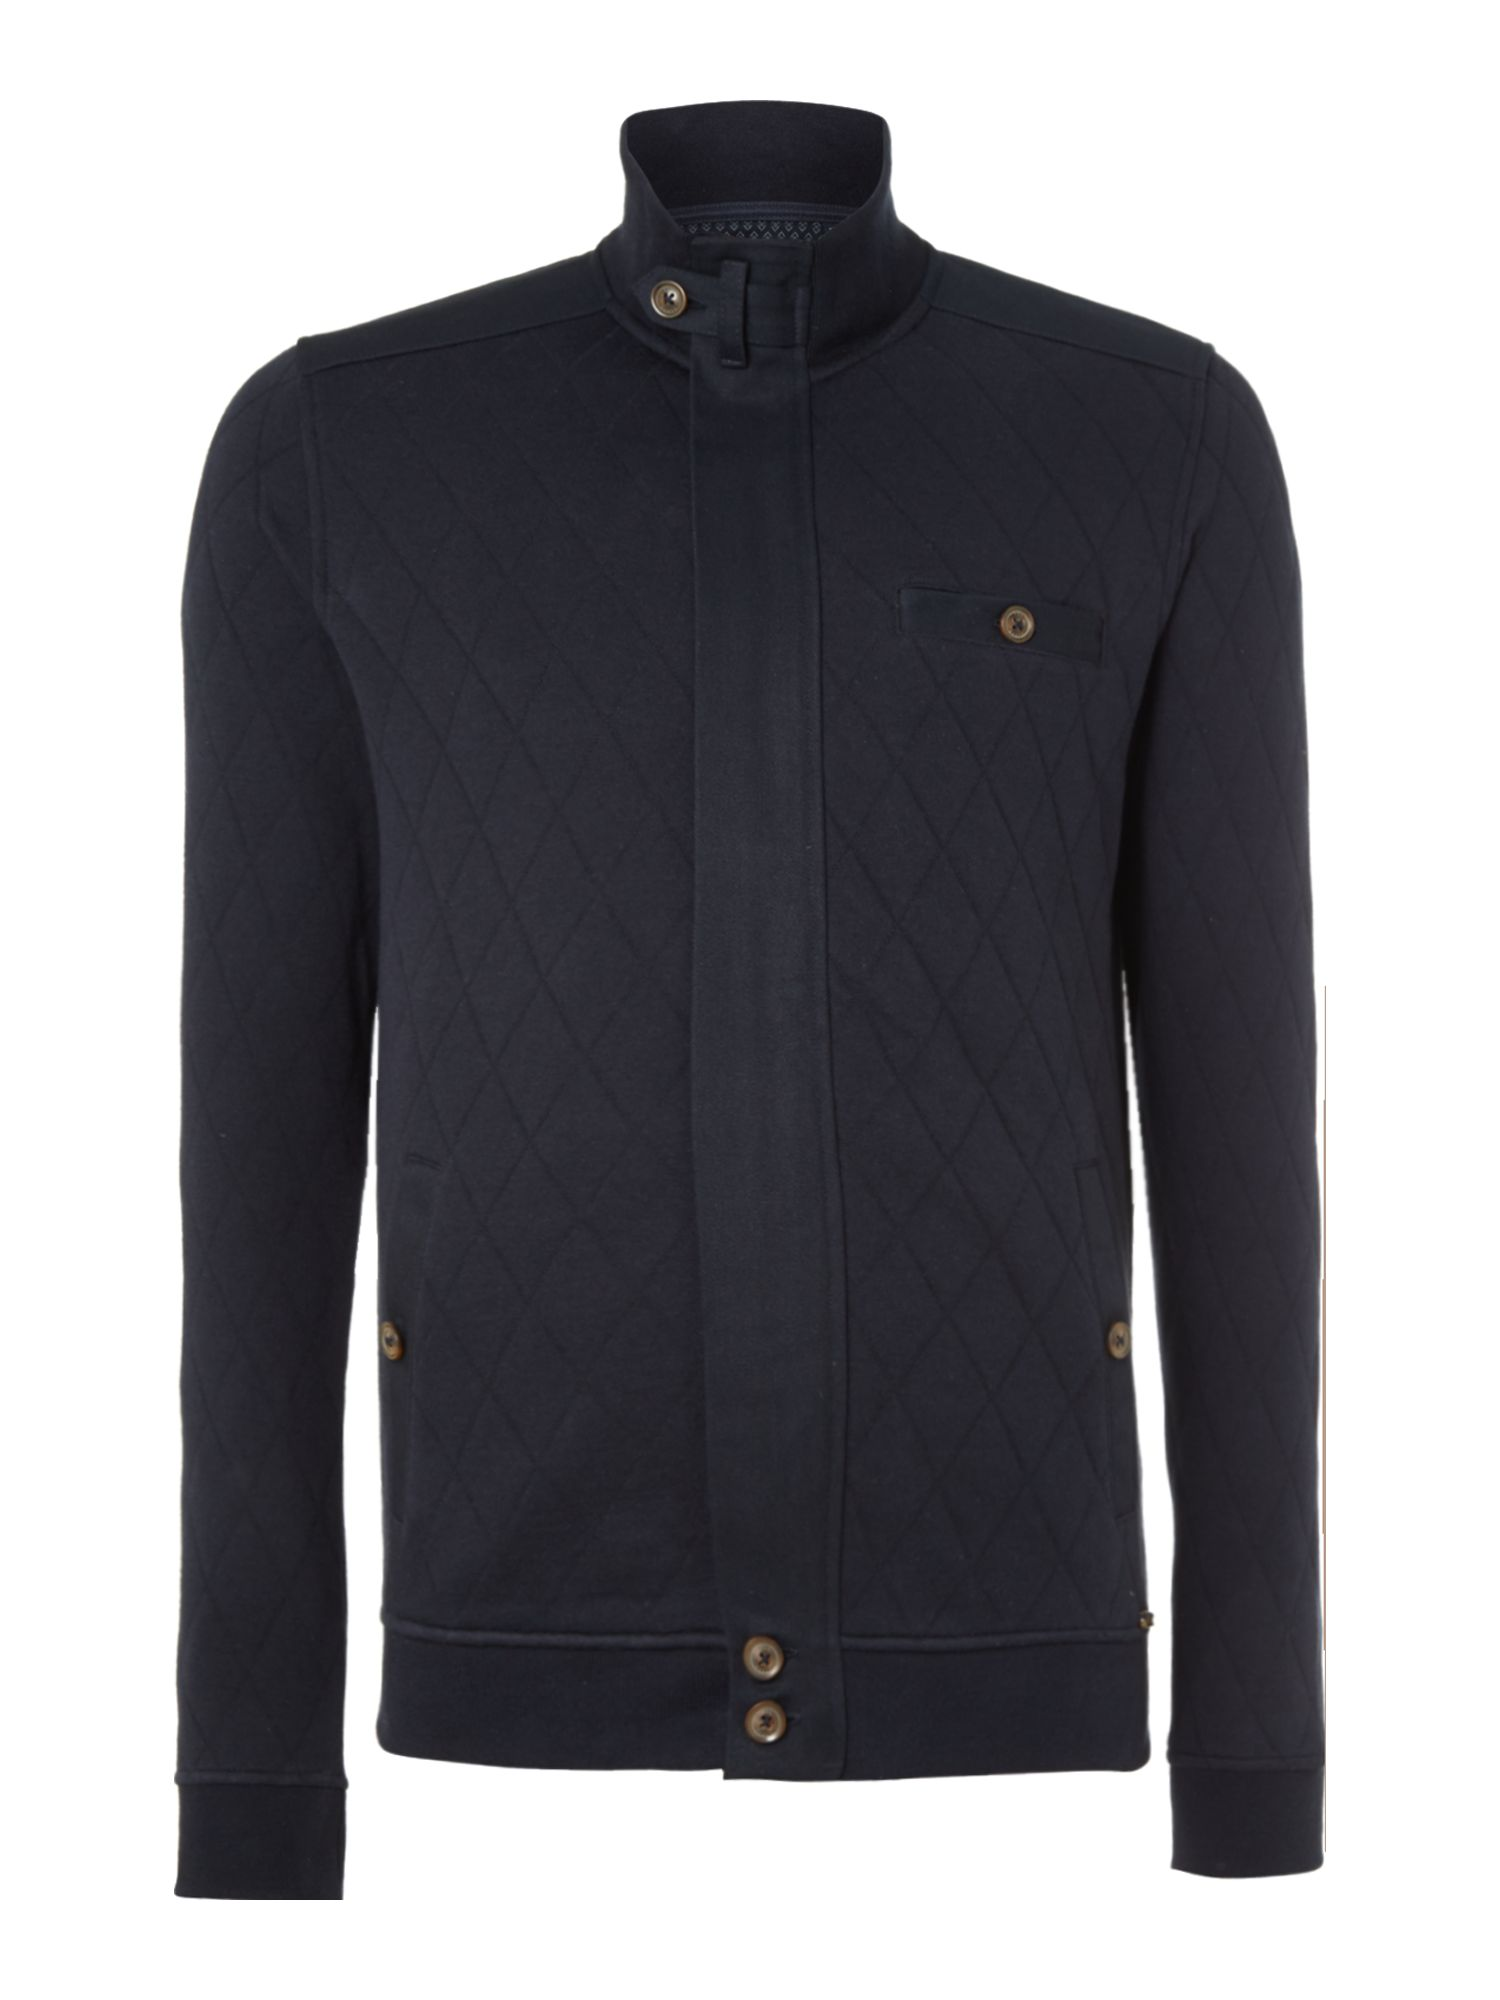 Valylow quilted jersey jacket